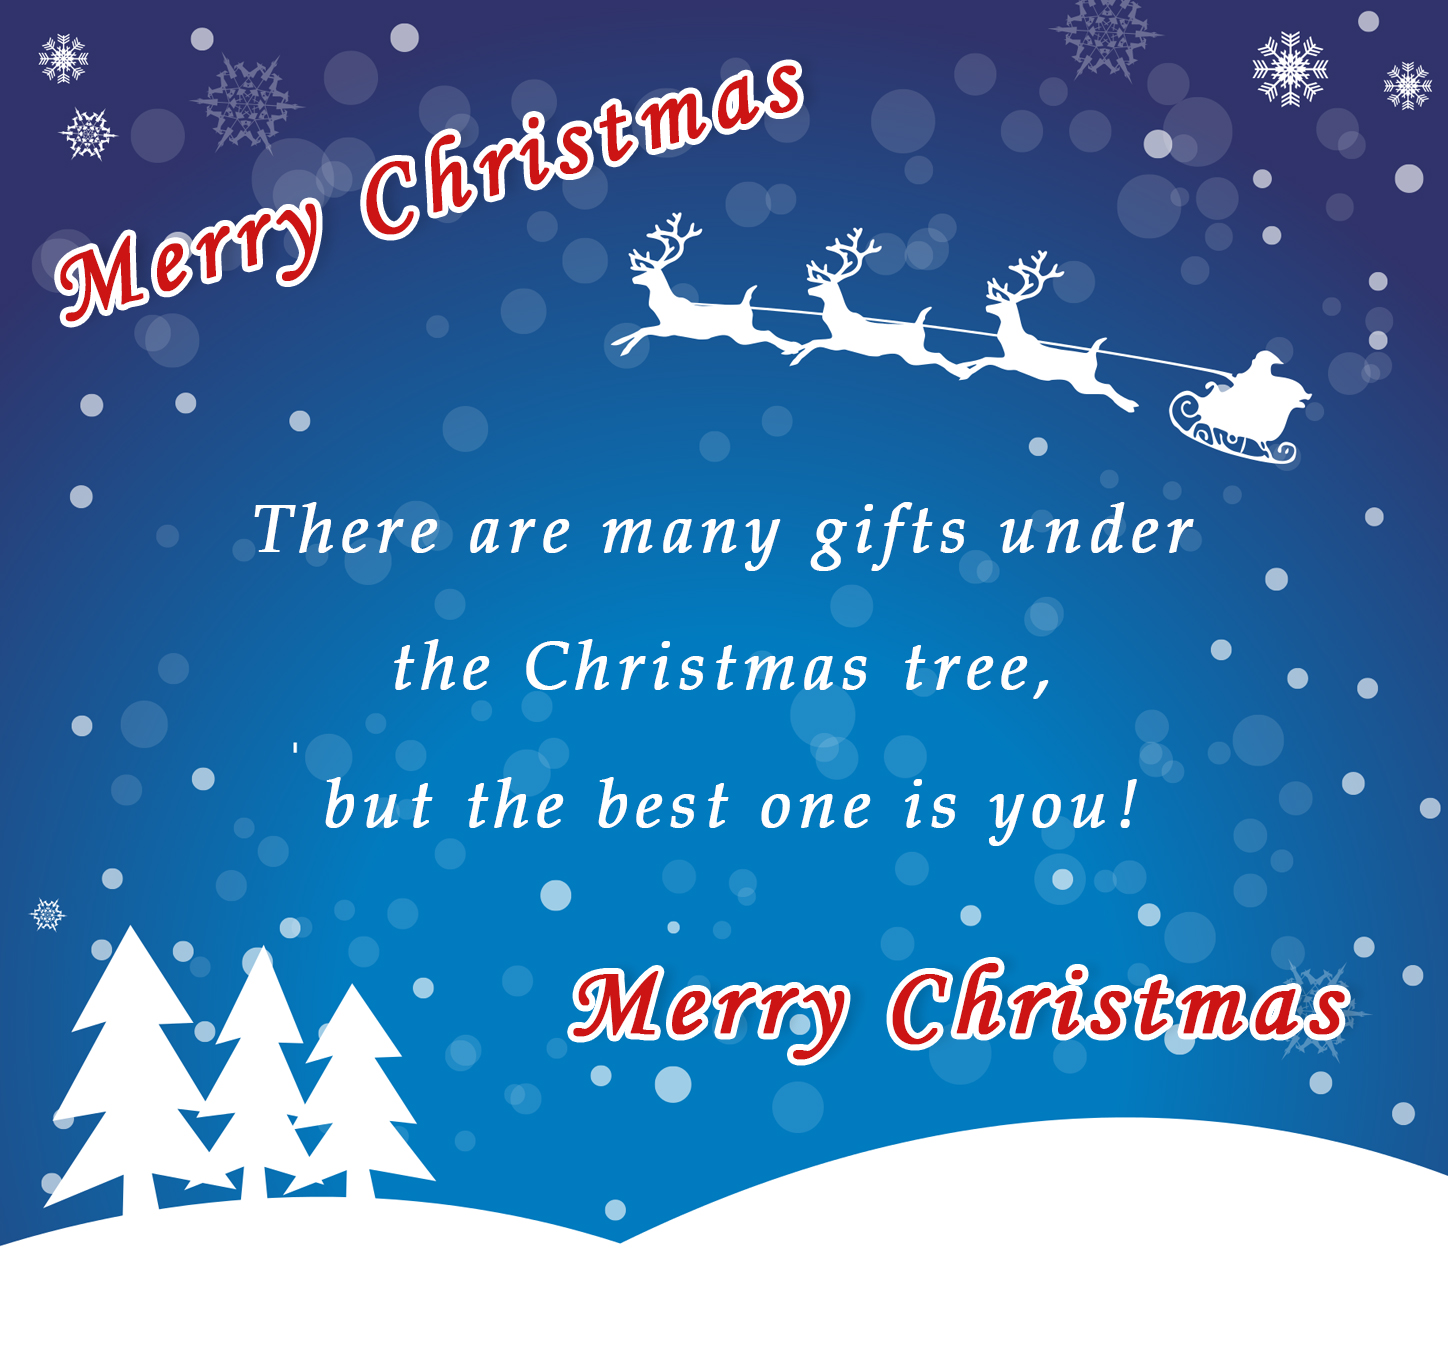 Best Christmas Cards.Merry Christmas Images Christmas Images 2018 Wishes Quotes